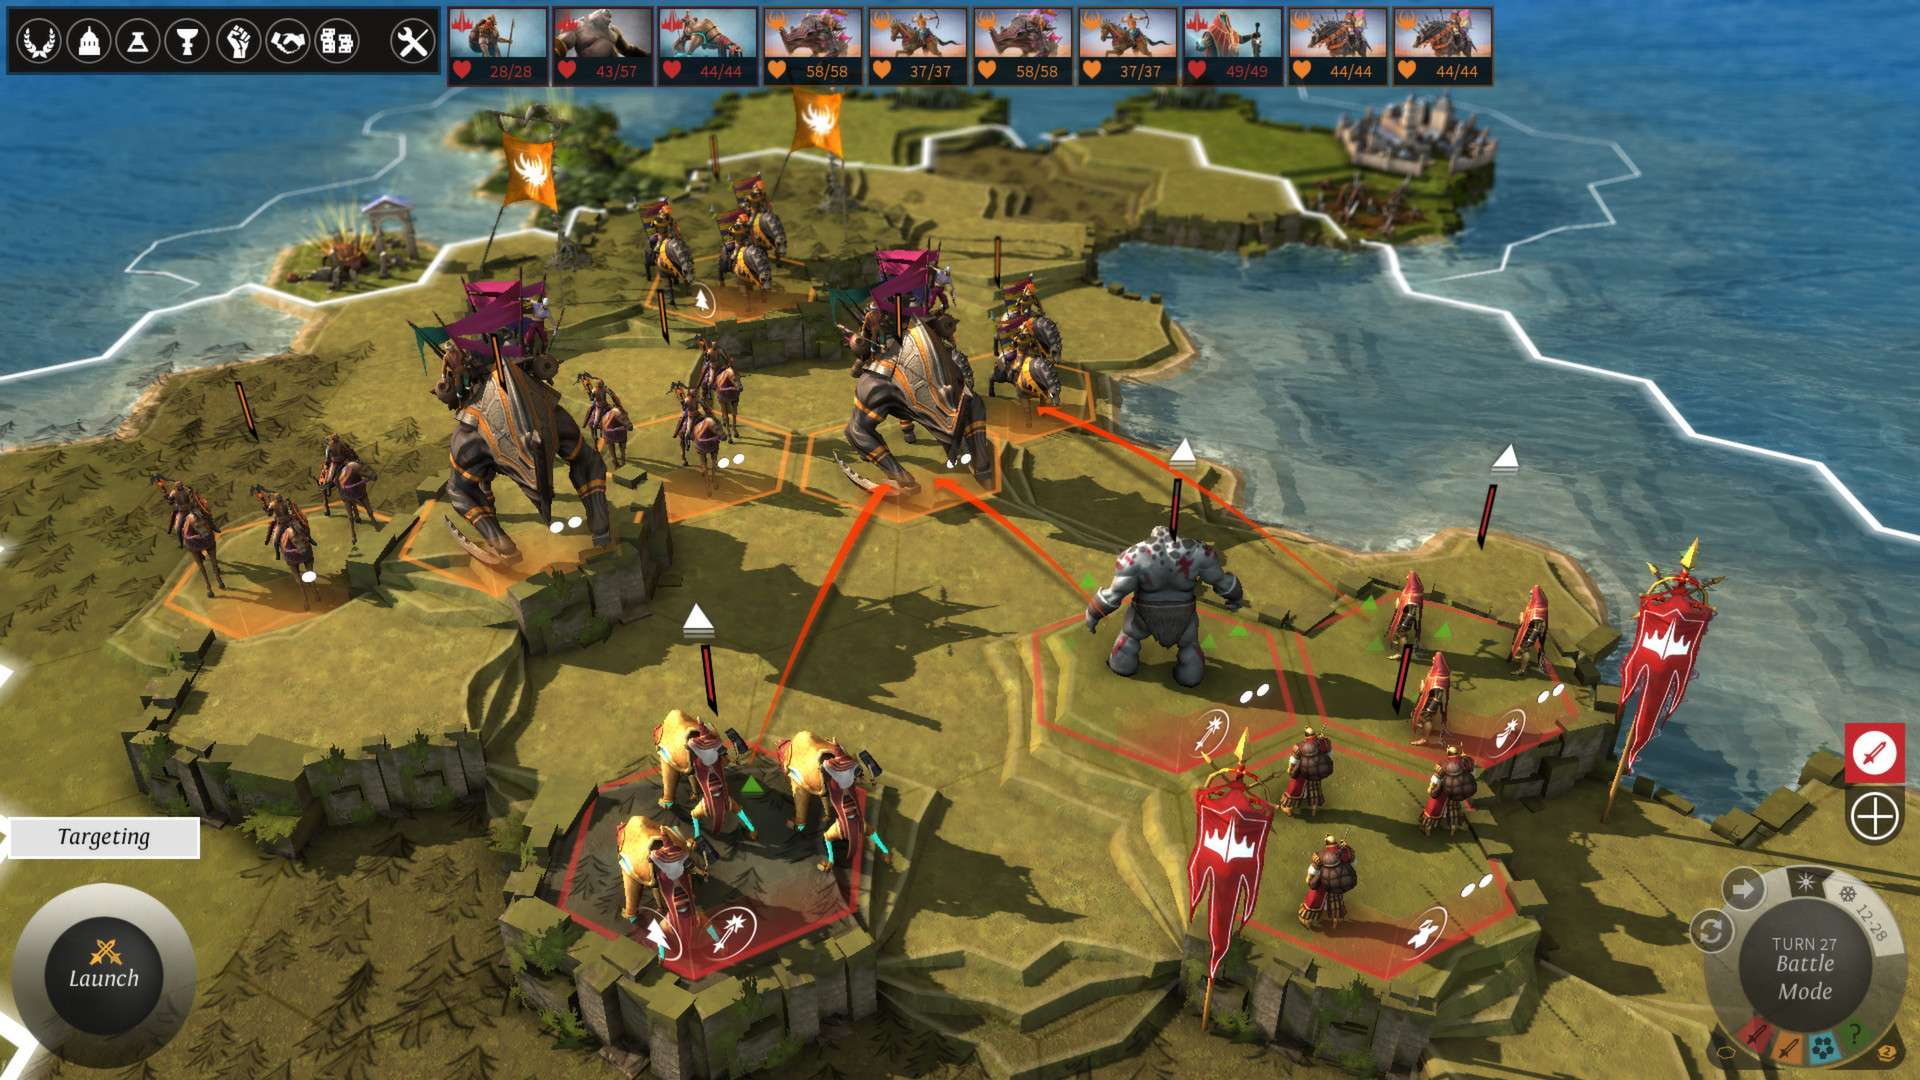 Screenshot for the game Endless Legend [v 1.6.10 S3 + DLC's] (2014) PC | RePack from R.G. Mechanics